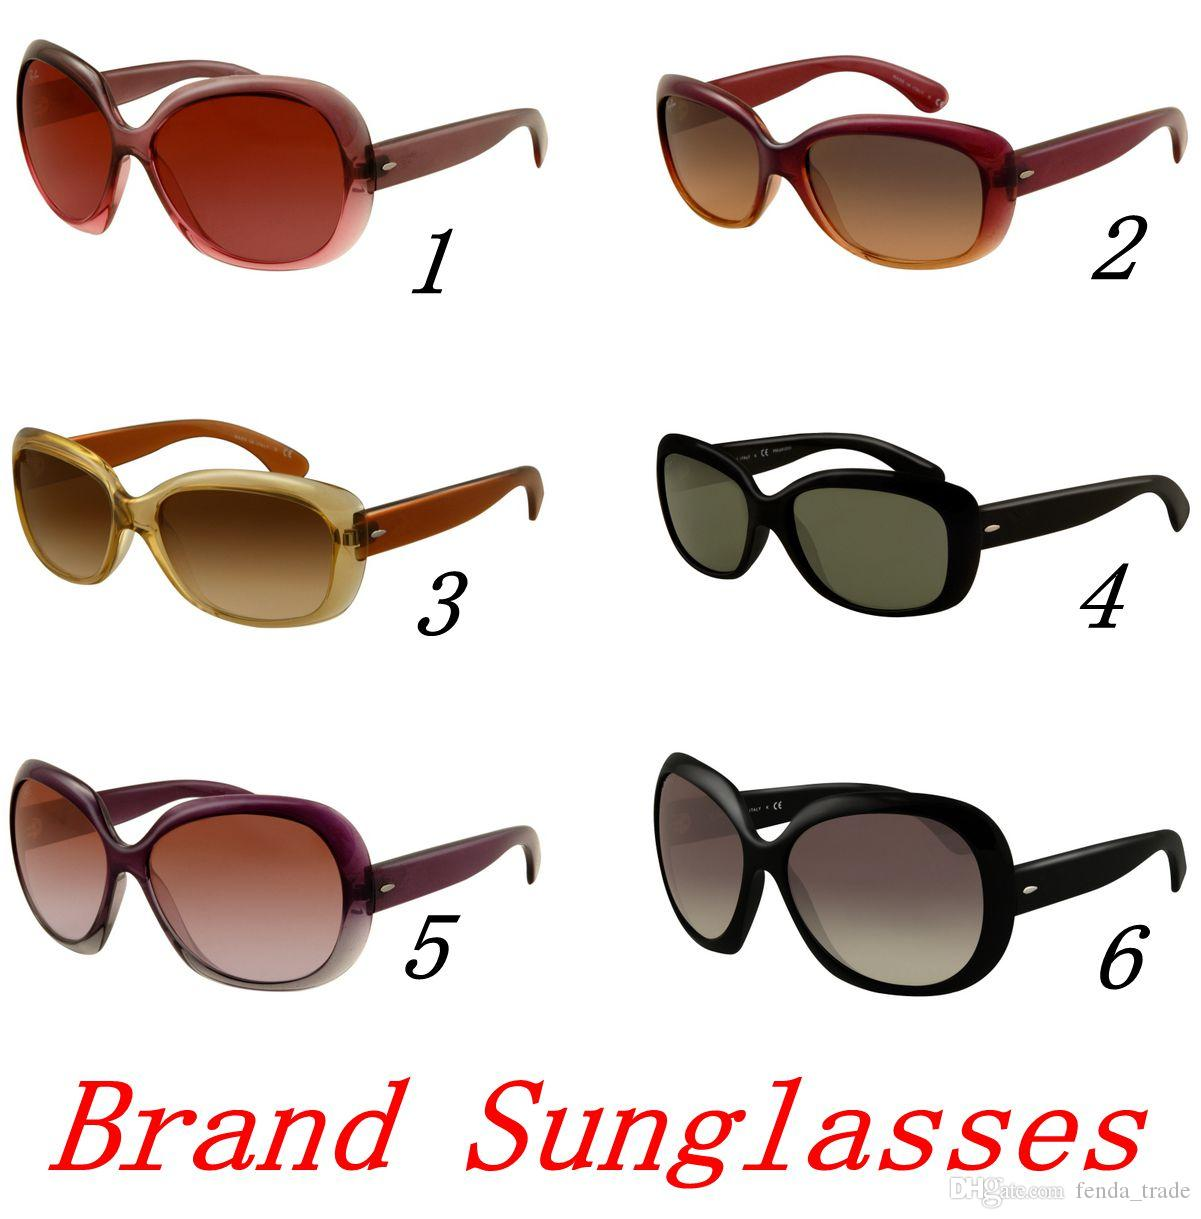 MOQ=10pcs Brand Designer Sunglasses for Women JACKing 4101 Nylon Square Frame Glass Lens UV400 Protection Top Quality ONLY SUNGLASSES